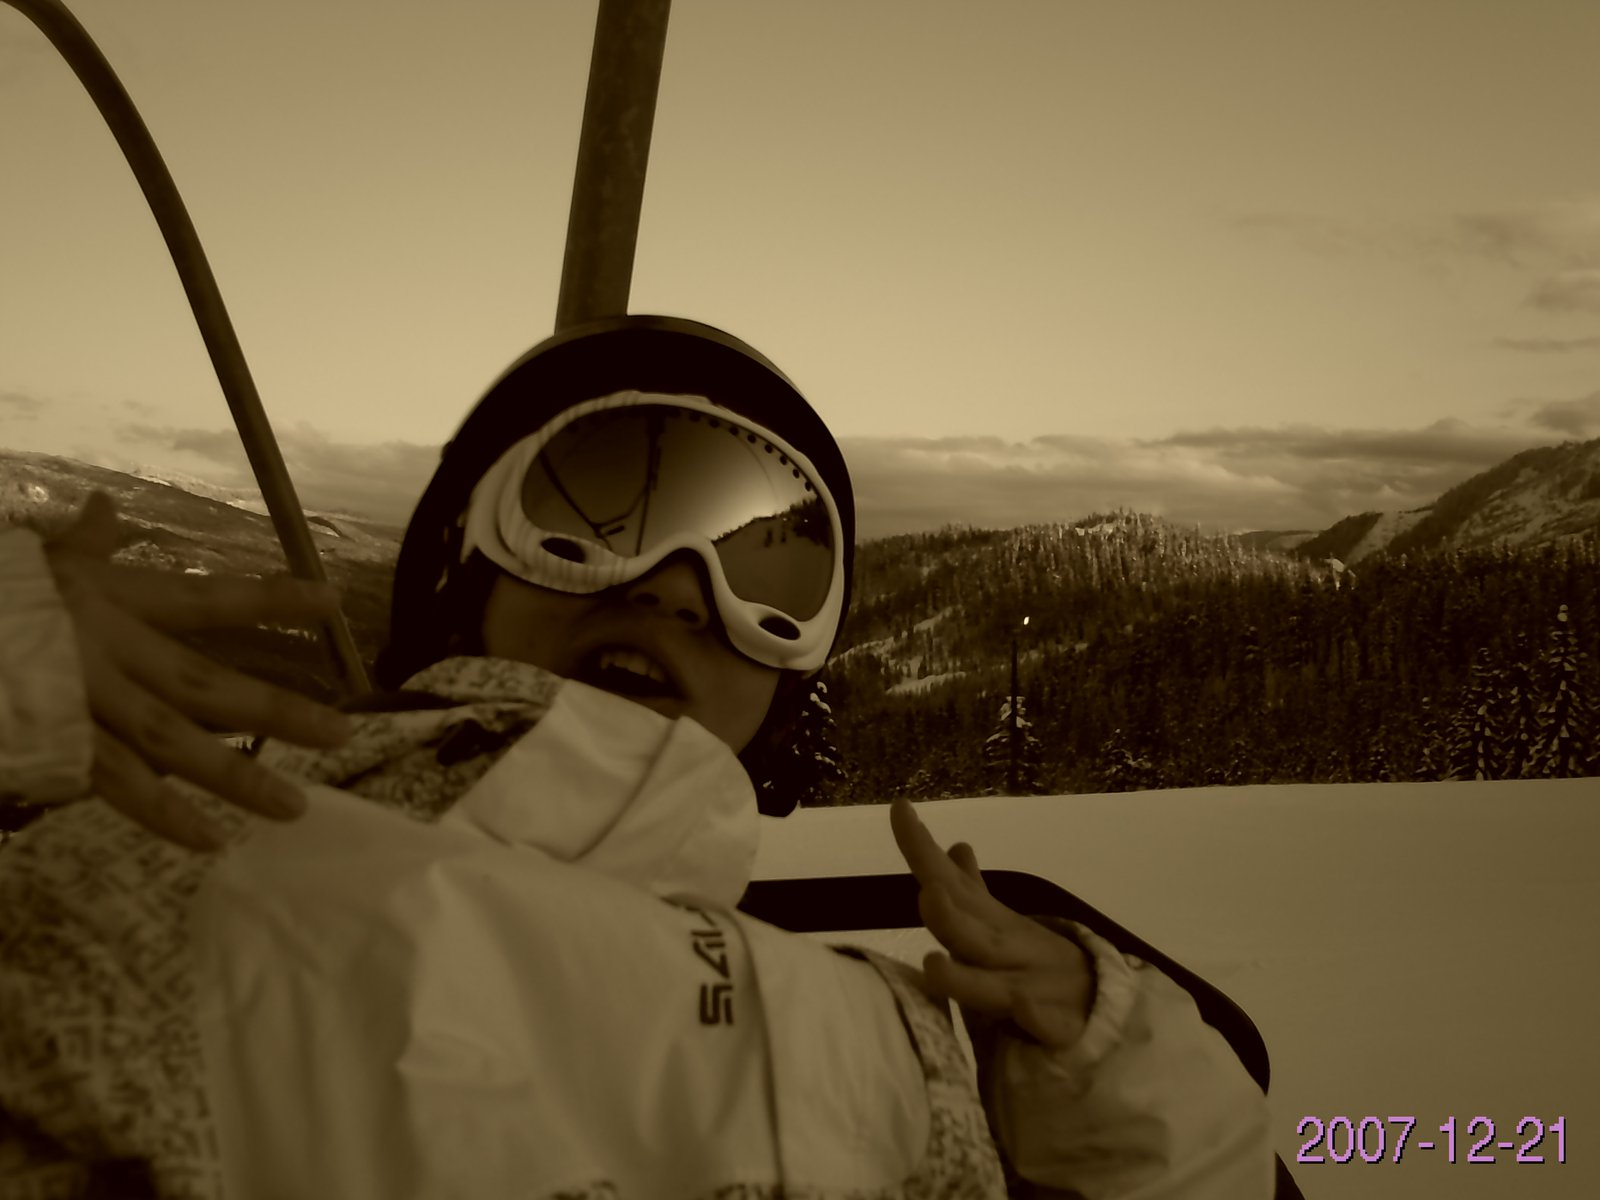 Chillen on the lift